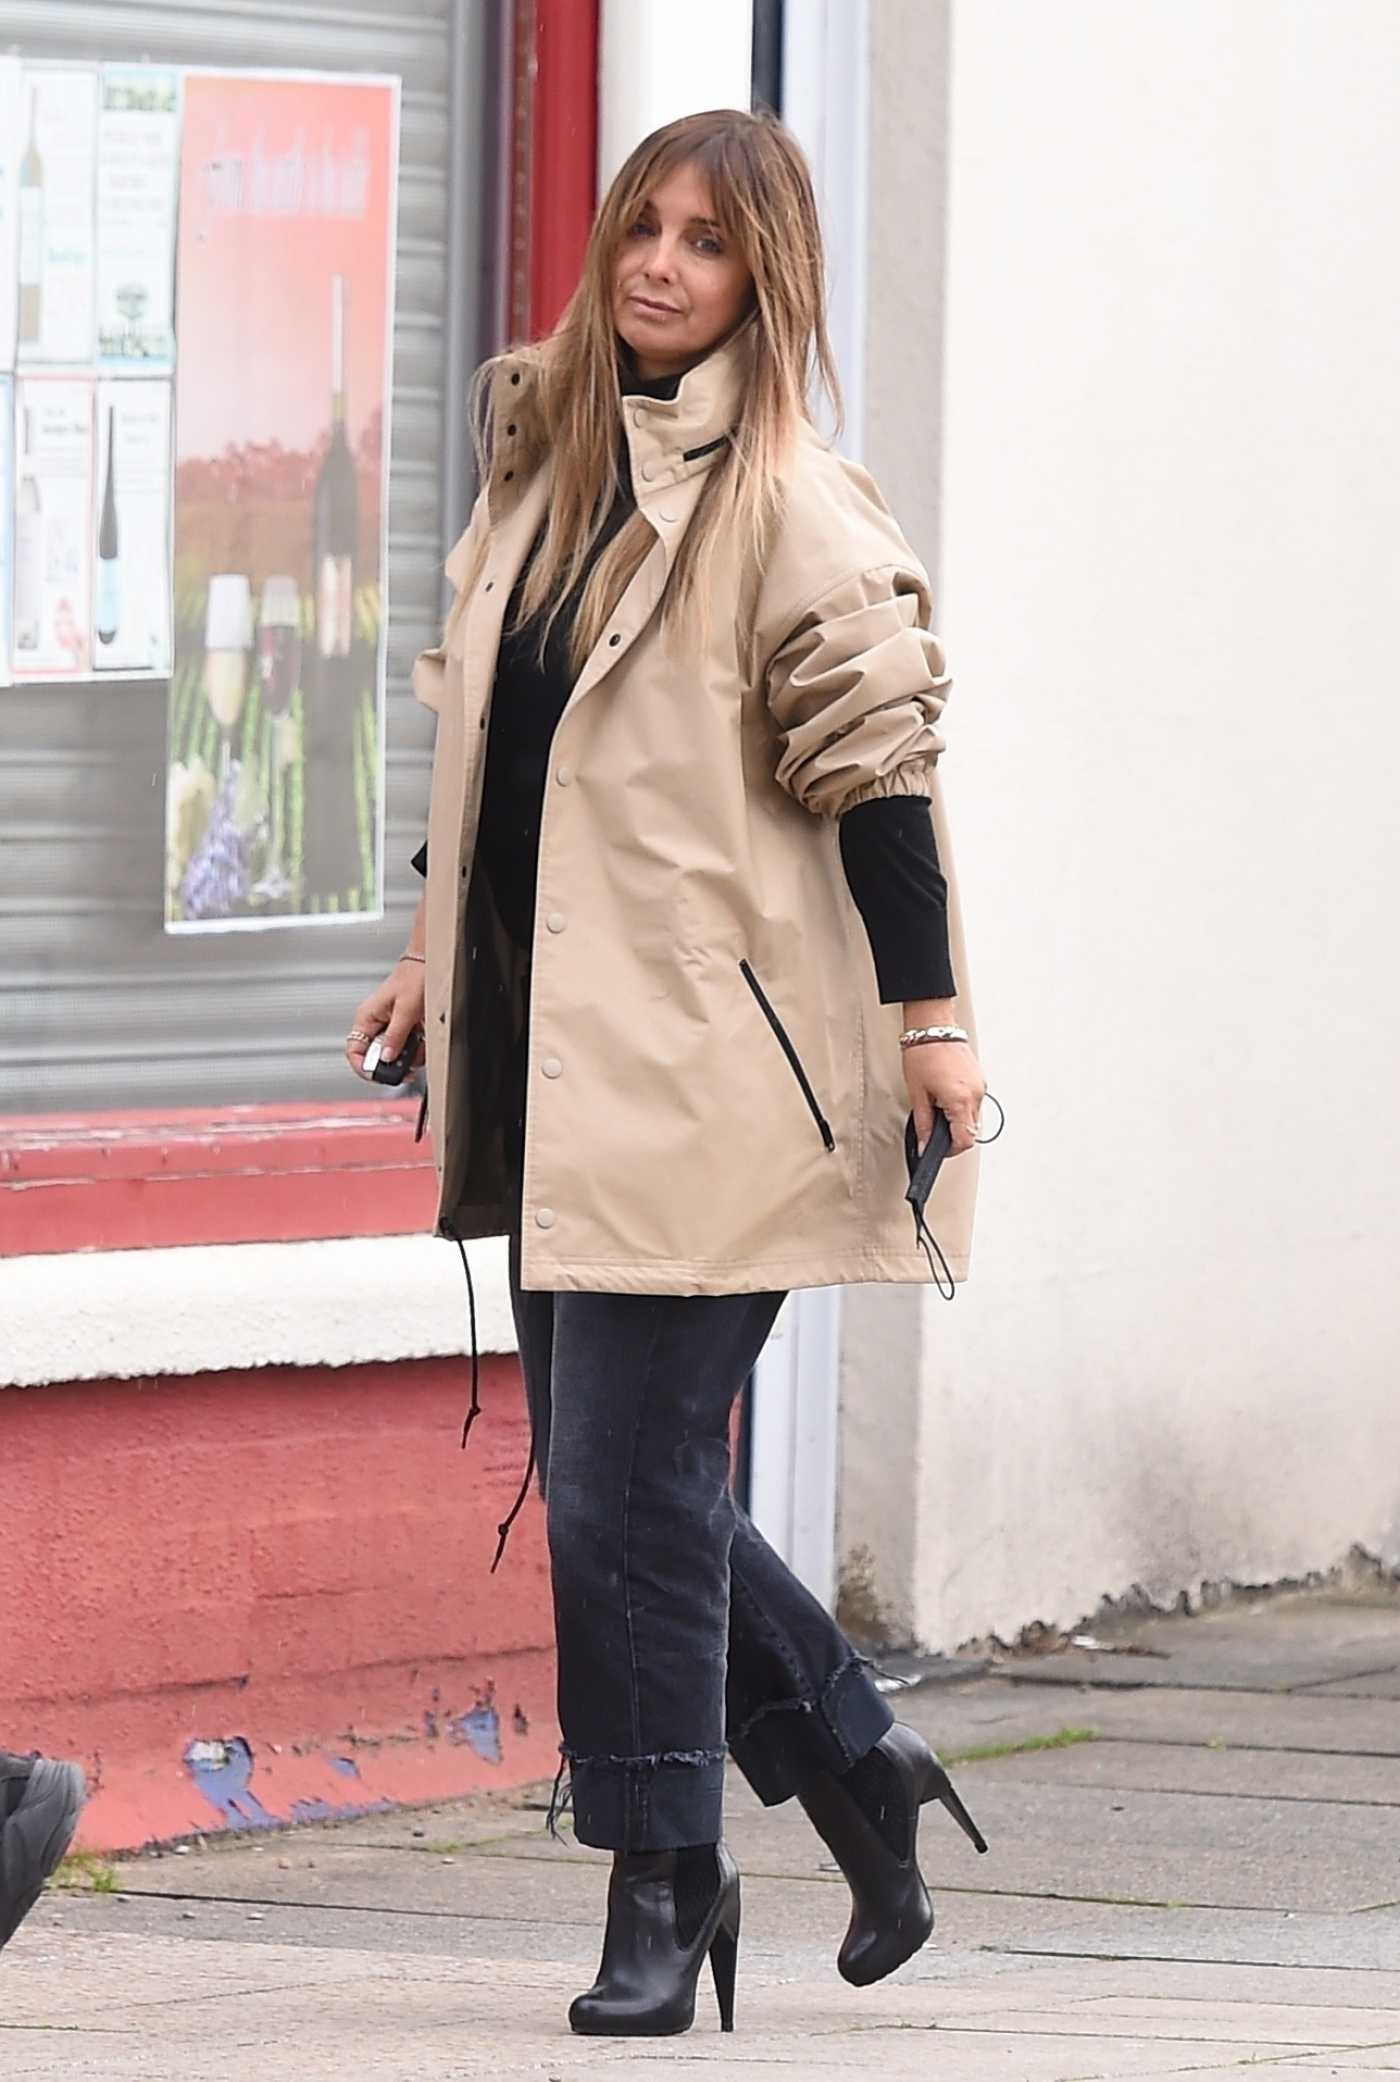 Louise Redknapp in a Beige Windbreaker Was Seen Out in London 10/26/2020